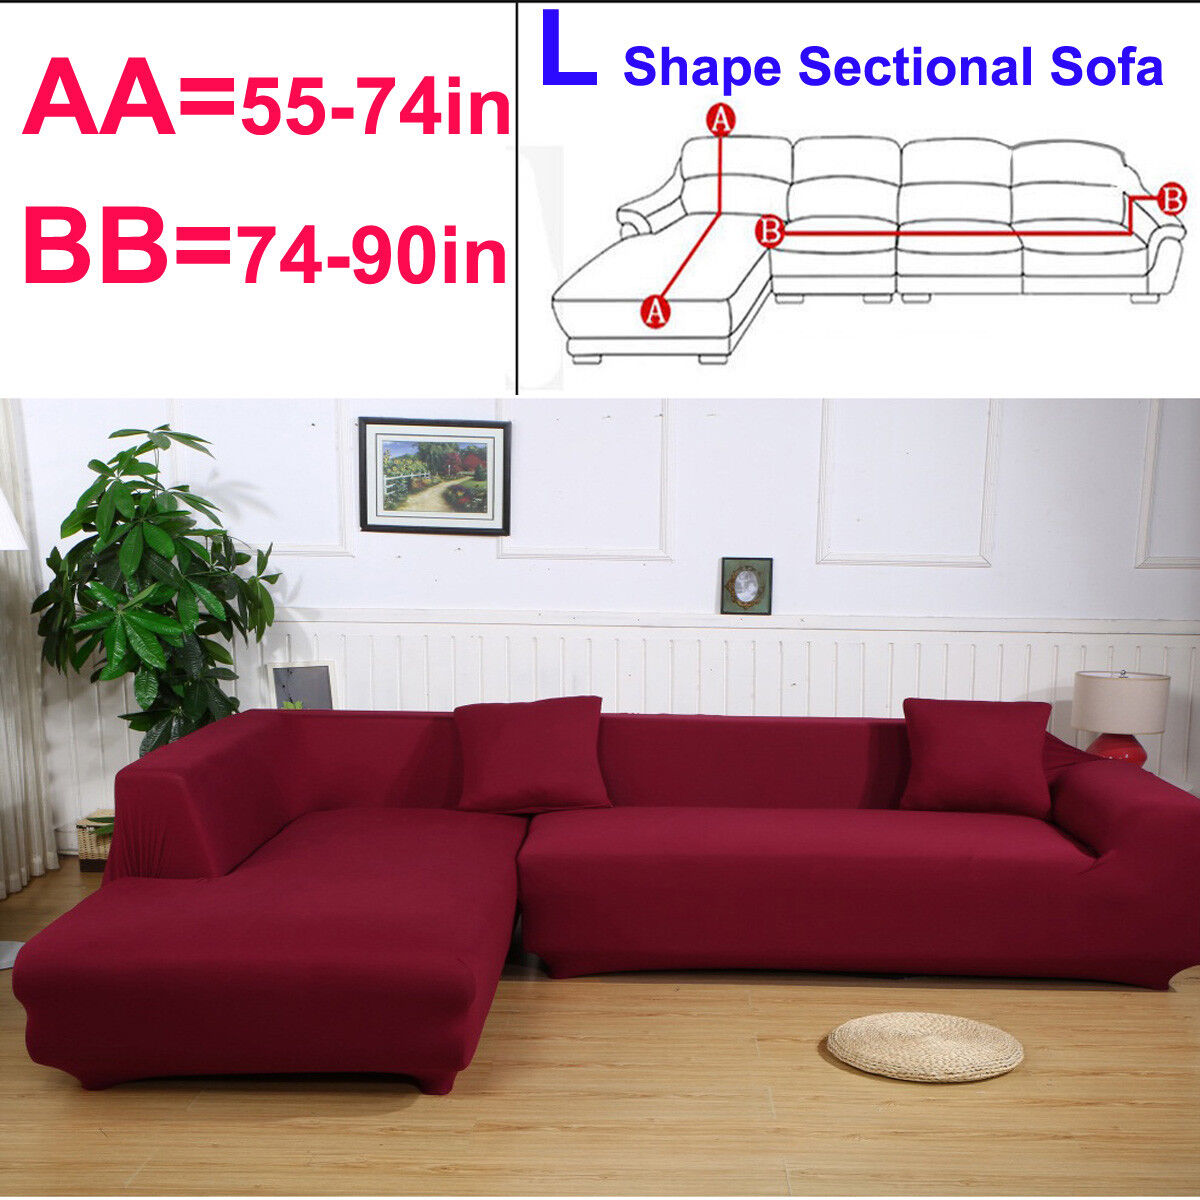 Details About L Shape Sectional 2 Seater 3 Seater Slipcover Corner Stretch Sofa Couch Cover